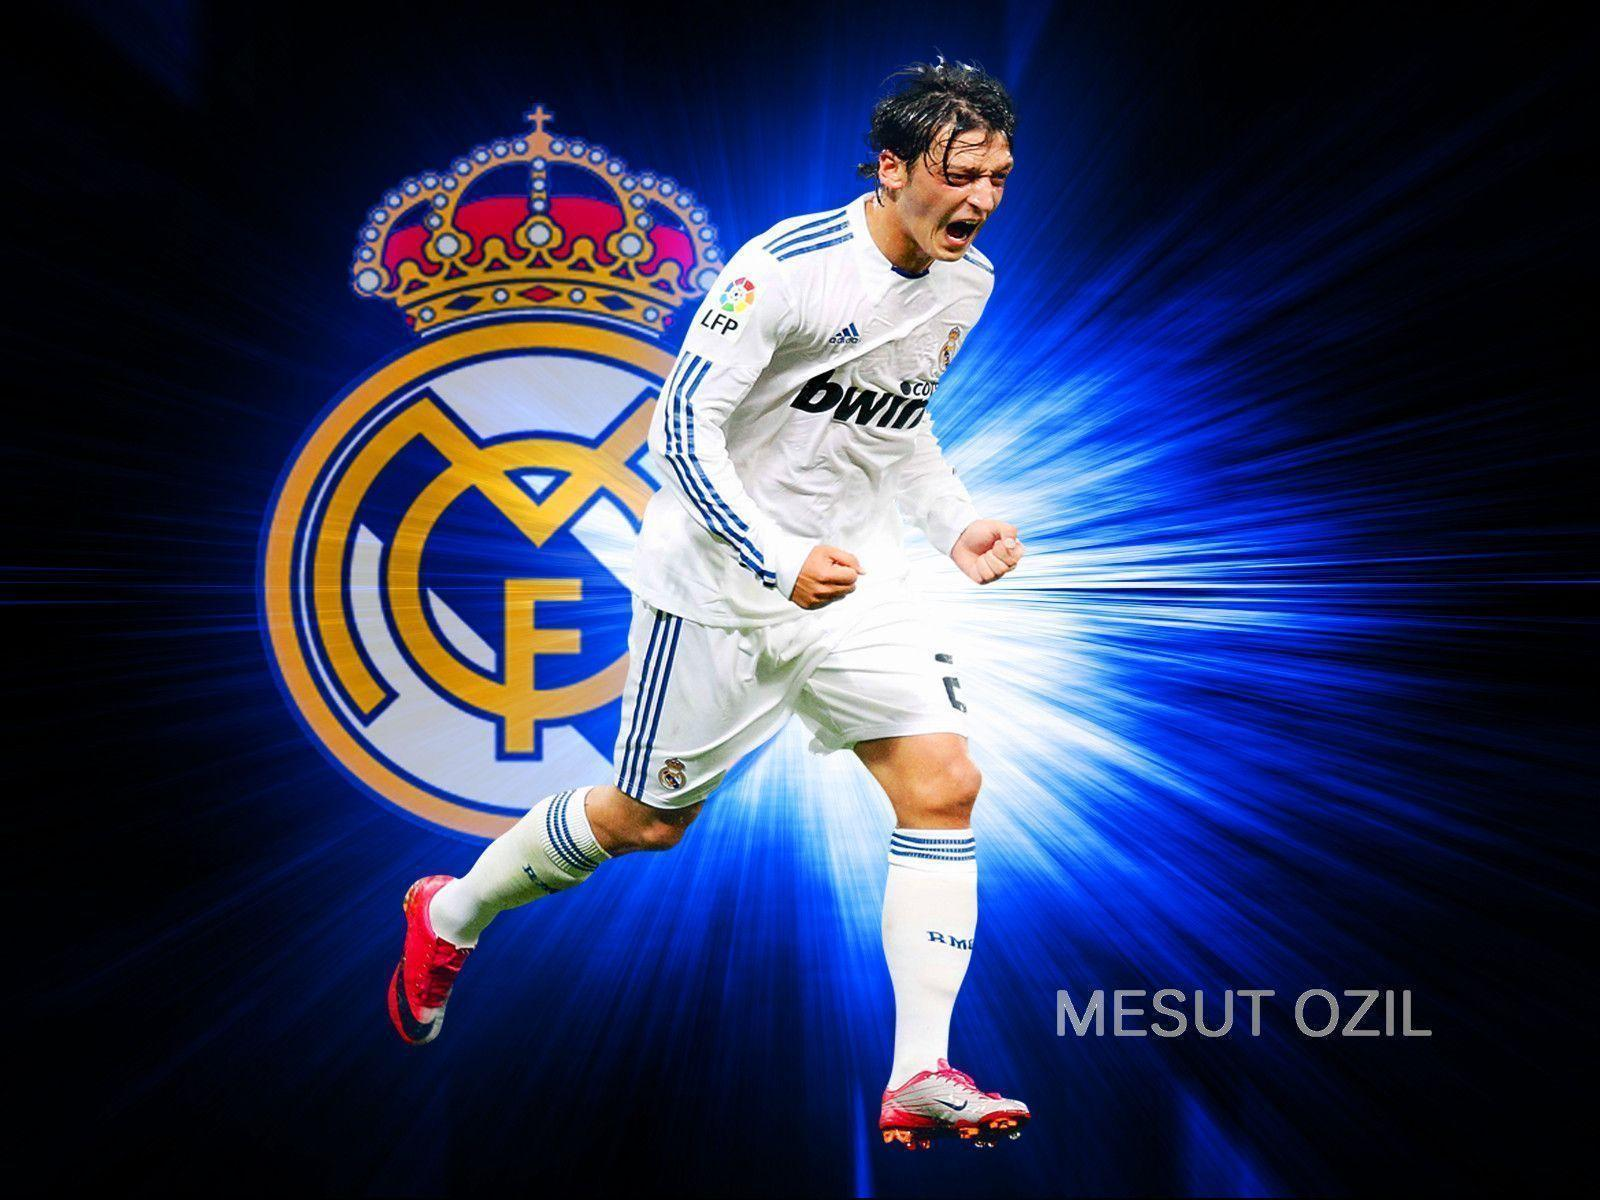 Fonds d&Mesut Ozil : tous les wallpapers Mesut Ozil